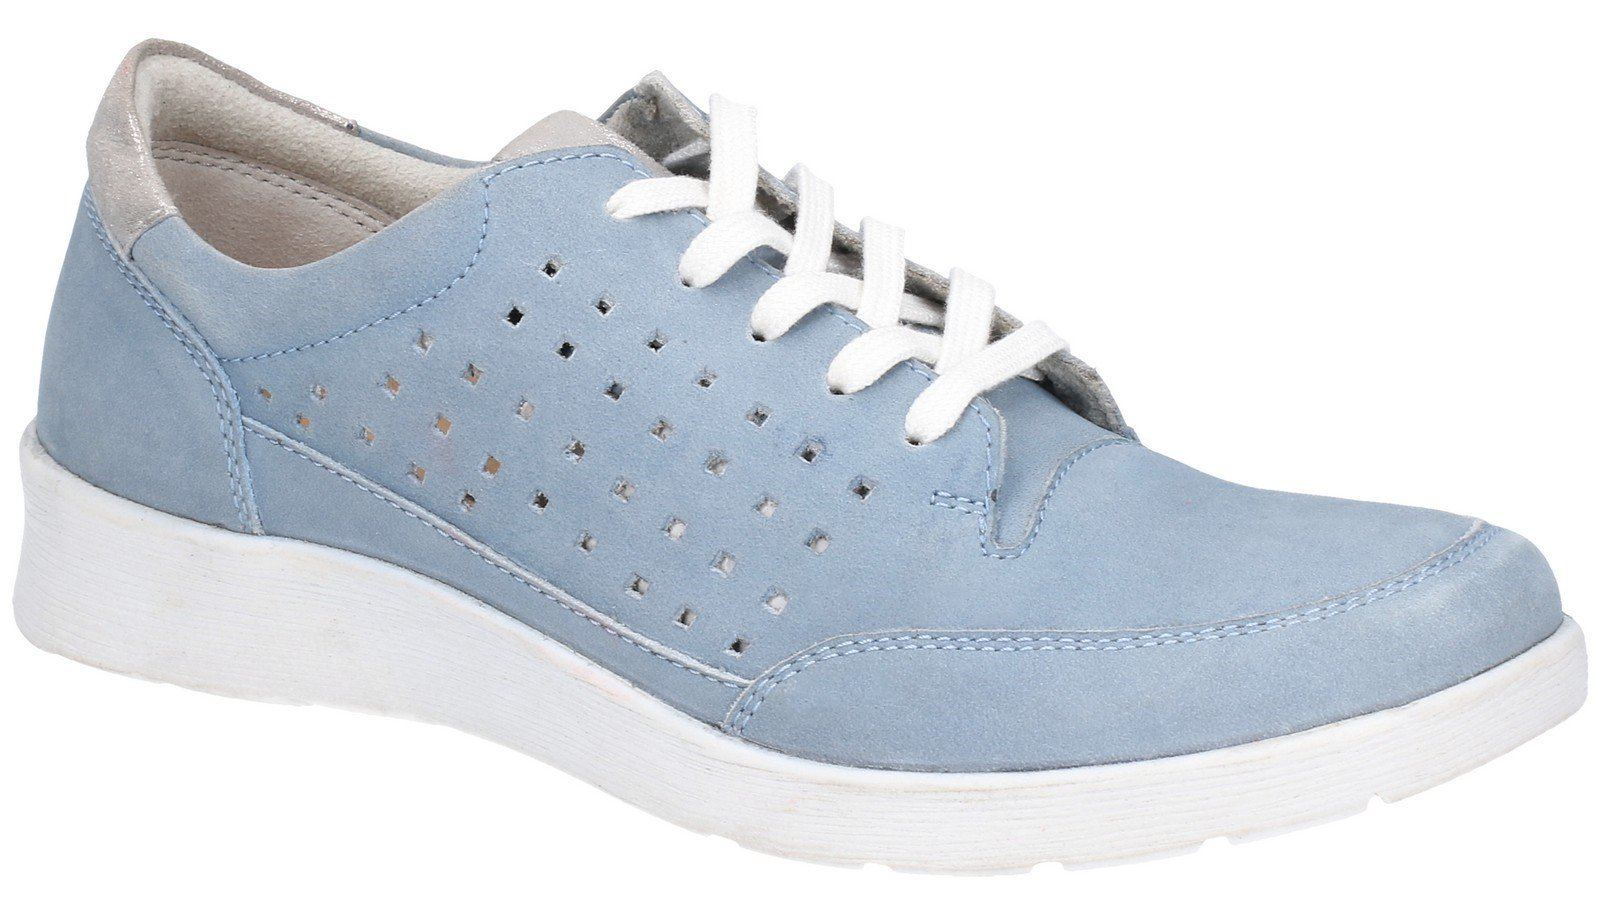 Hush Puppies Women's Molly Lace Up Shoe Various Colours 28408 - Blue 3